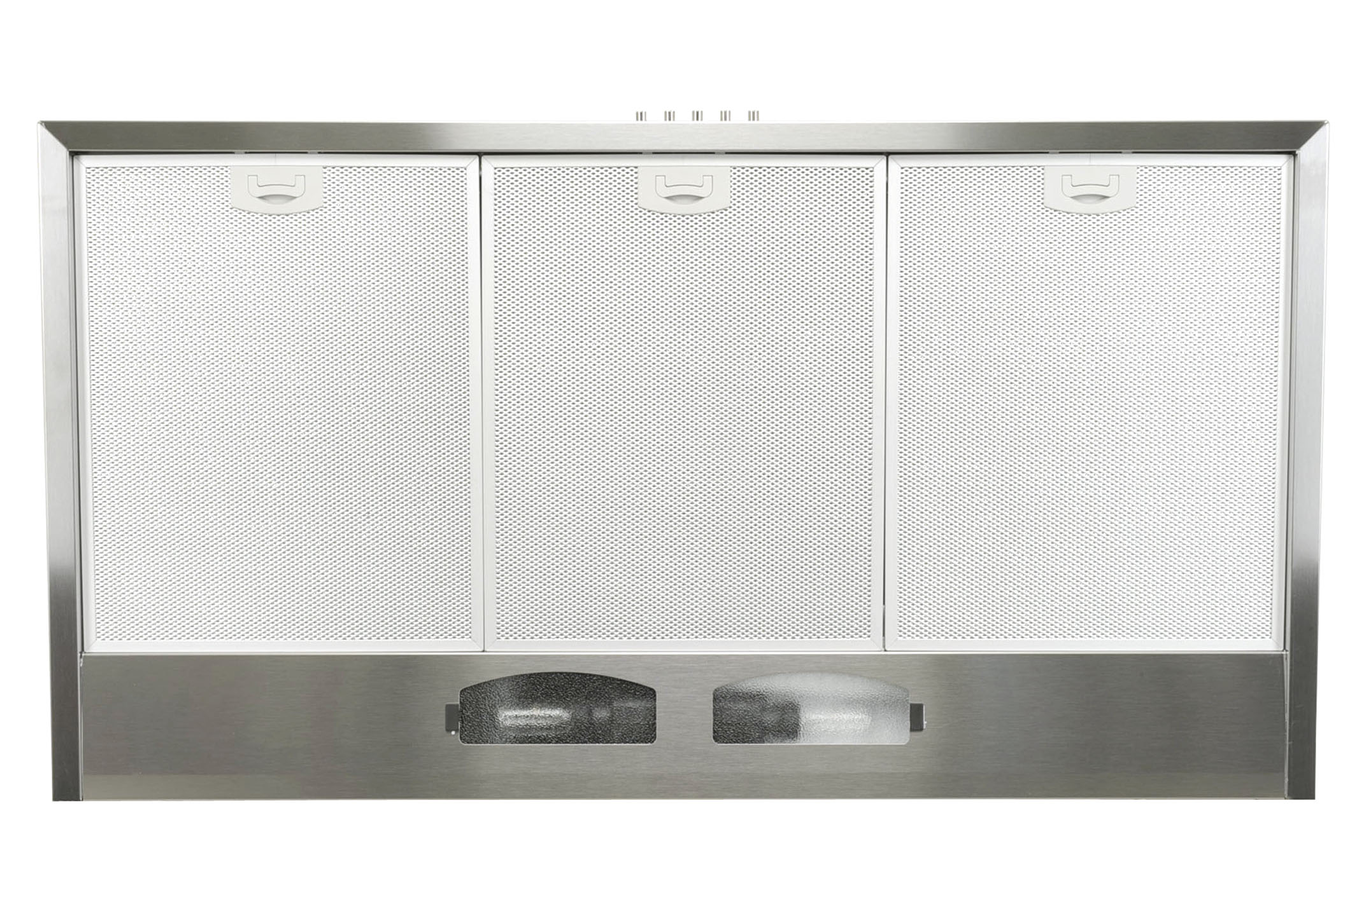 Hotte d corative murale candy cmb 90 x inox 2786737 darty for Hotte decorative murale 90